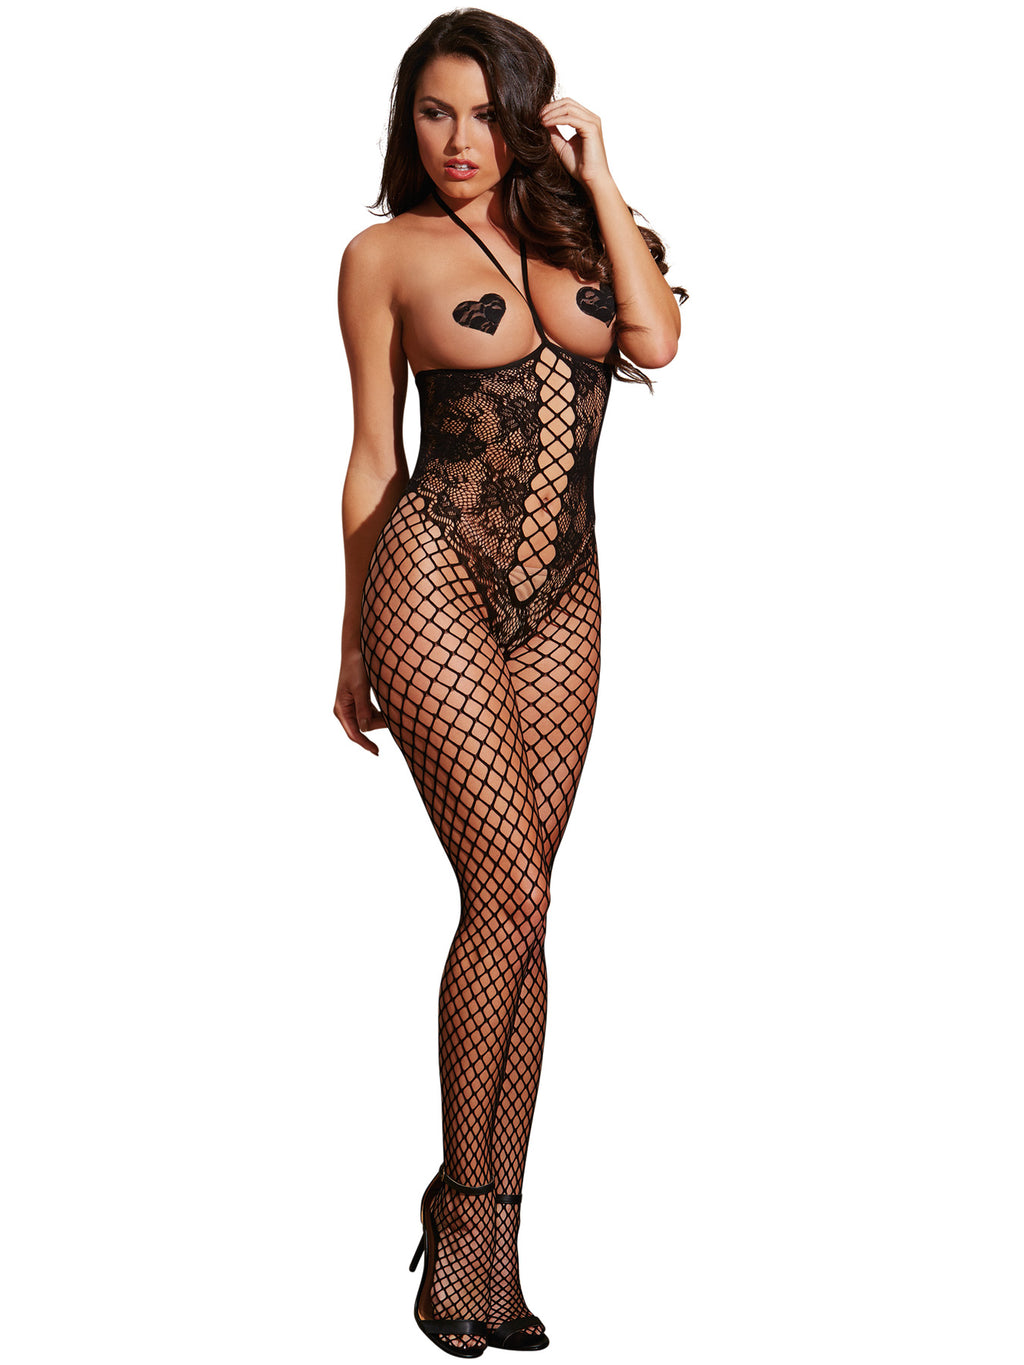 Open Cup Bodystocking - One Size - Black - Dreamgirl -  Los Angeles Lingerie